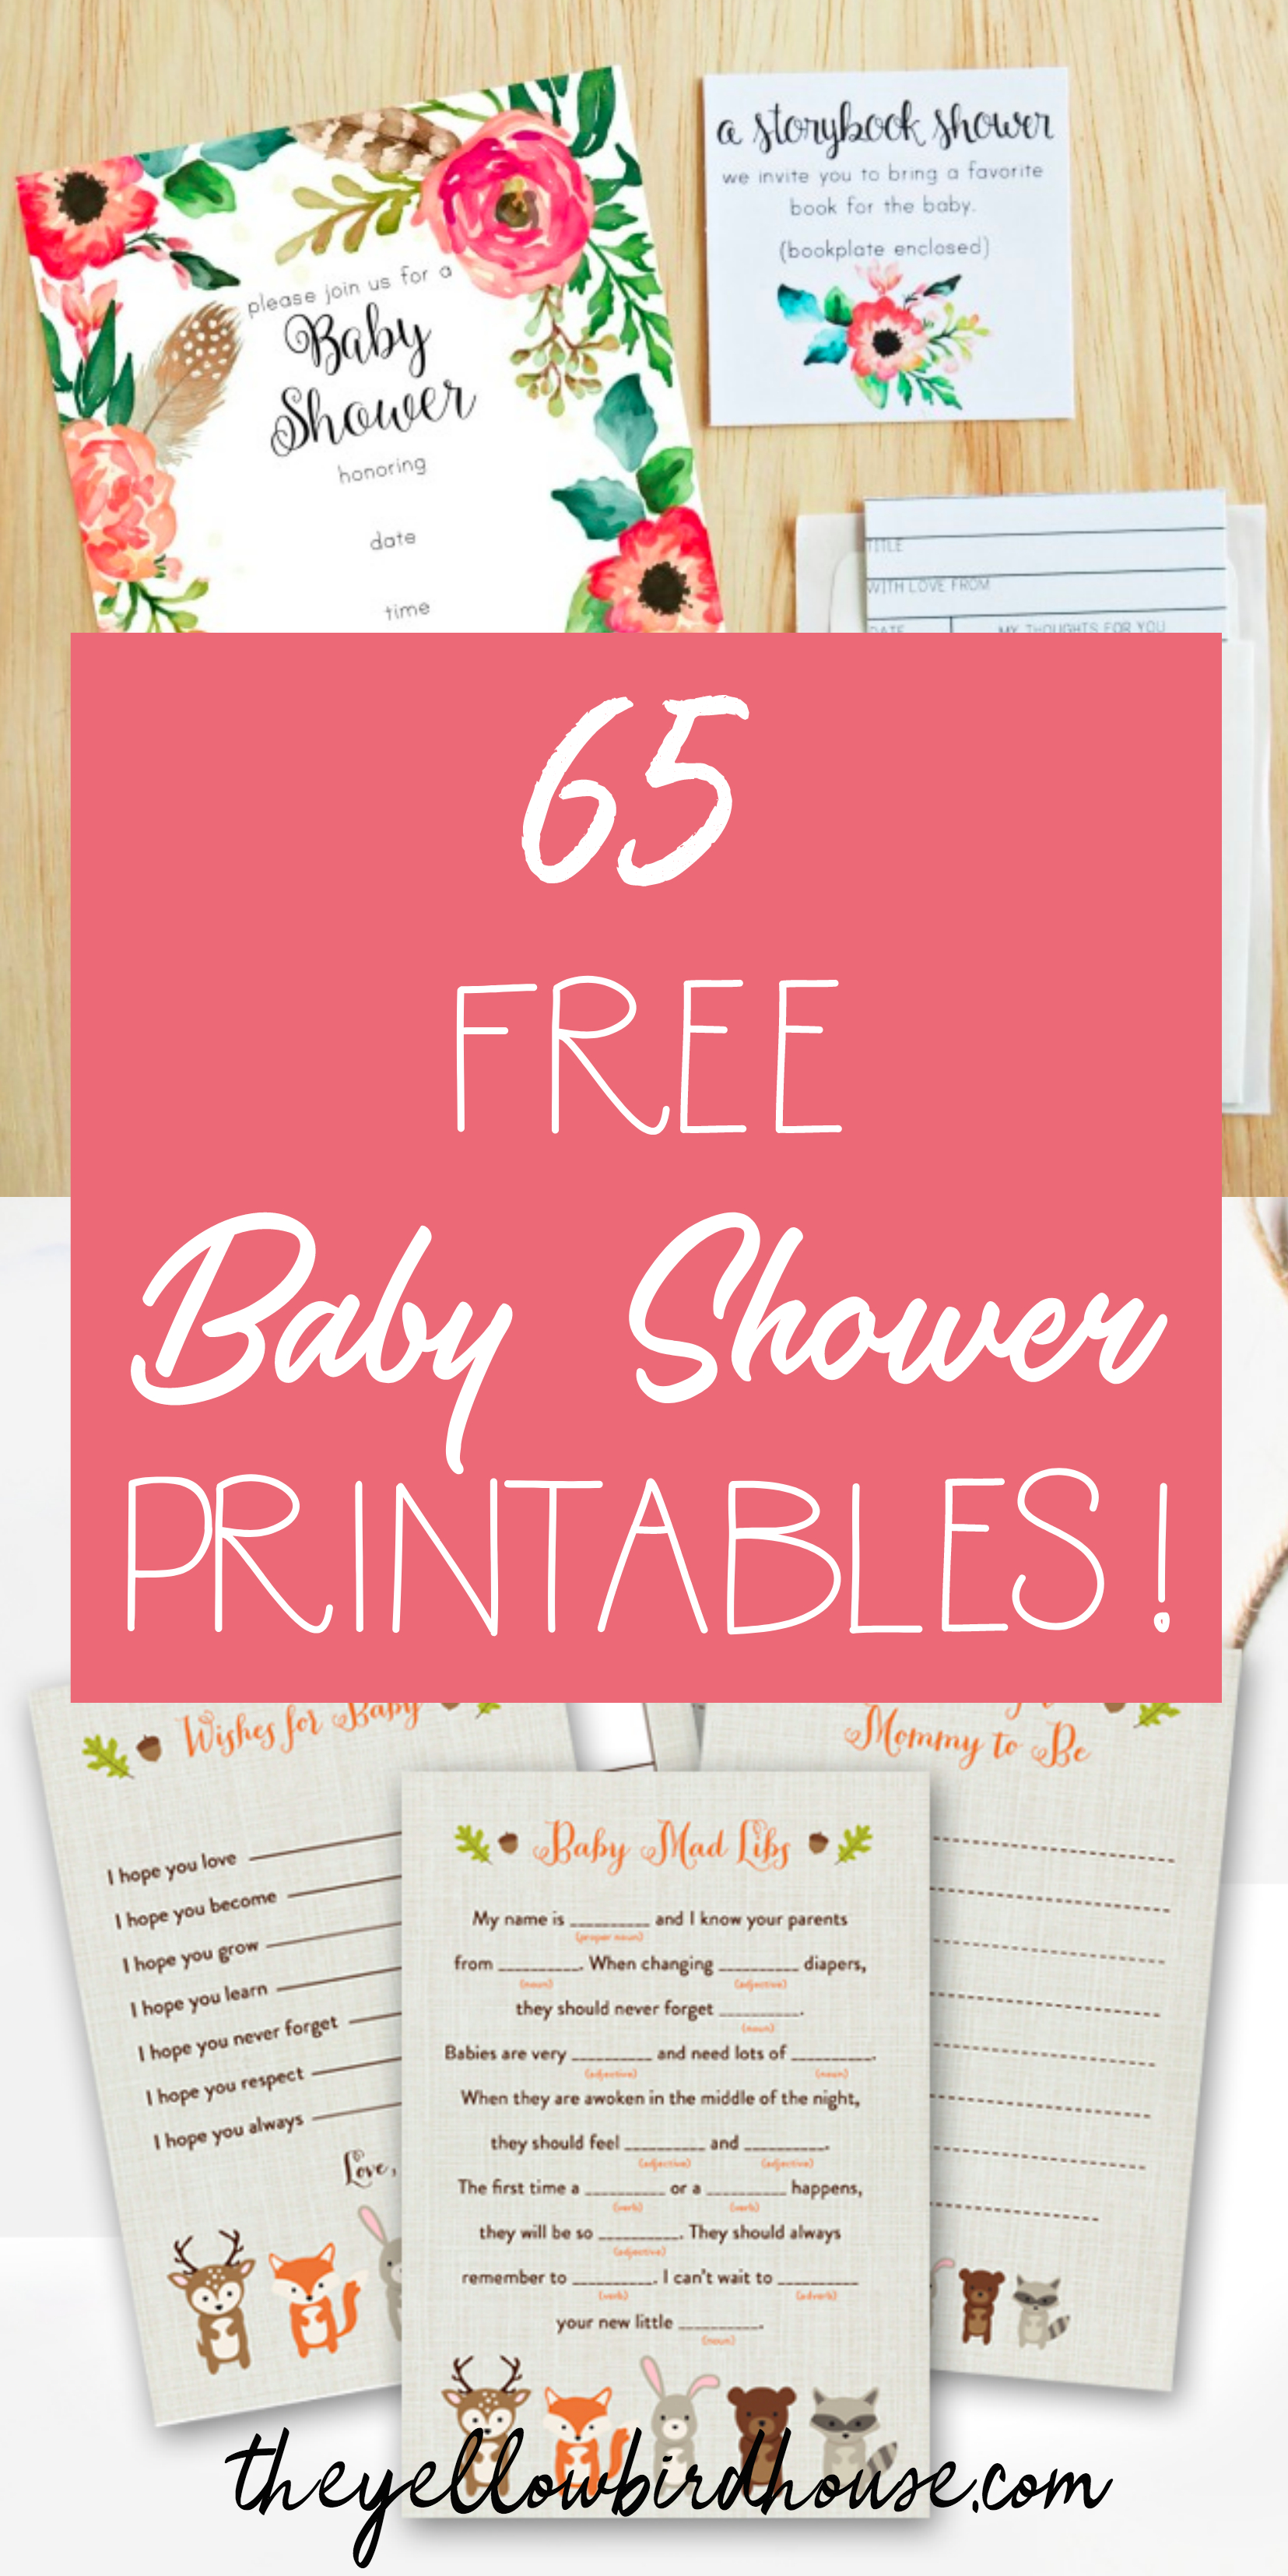 65 Free Baby Shower Printables For An Adorable Party - Free Printable Diaper Baby Shower Invitations